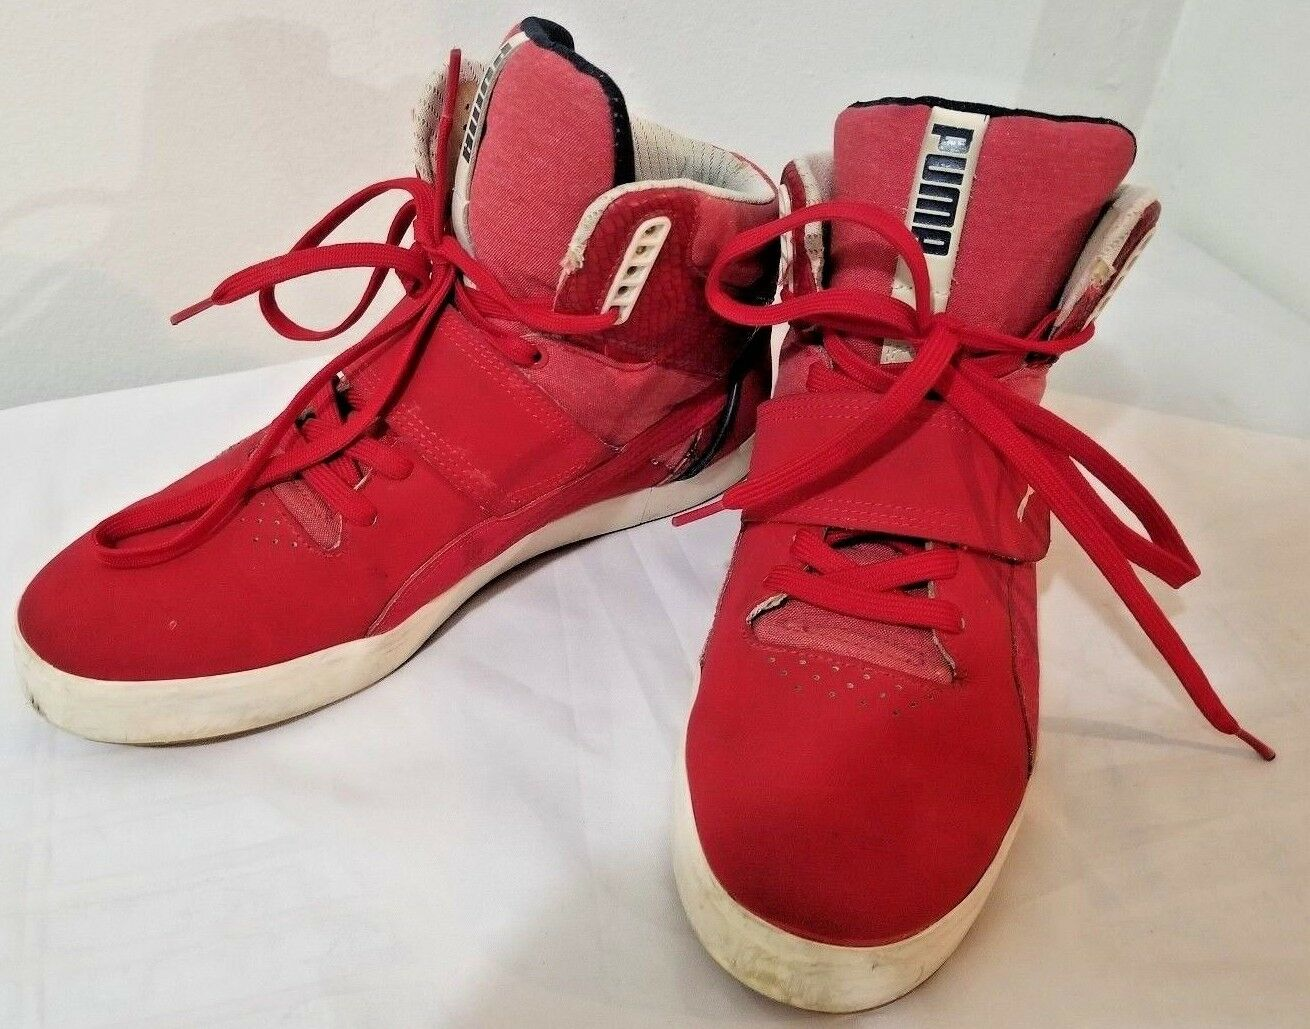 Puma Red Suburb Hi Top Sneakers w  Strap Size 11.5 M